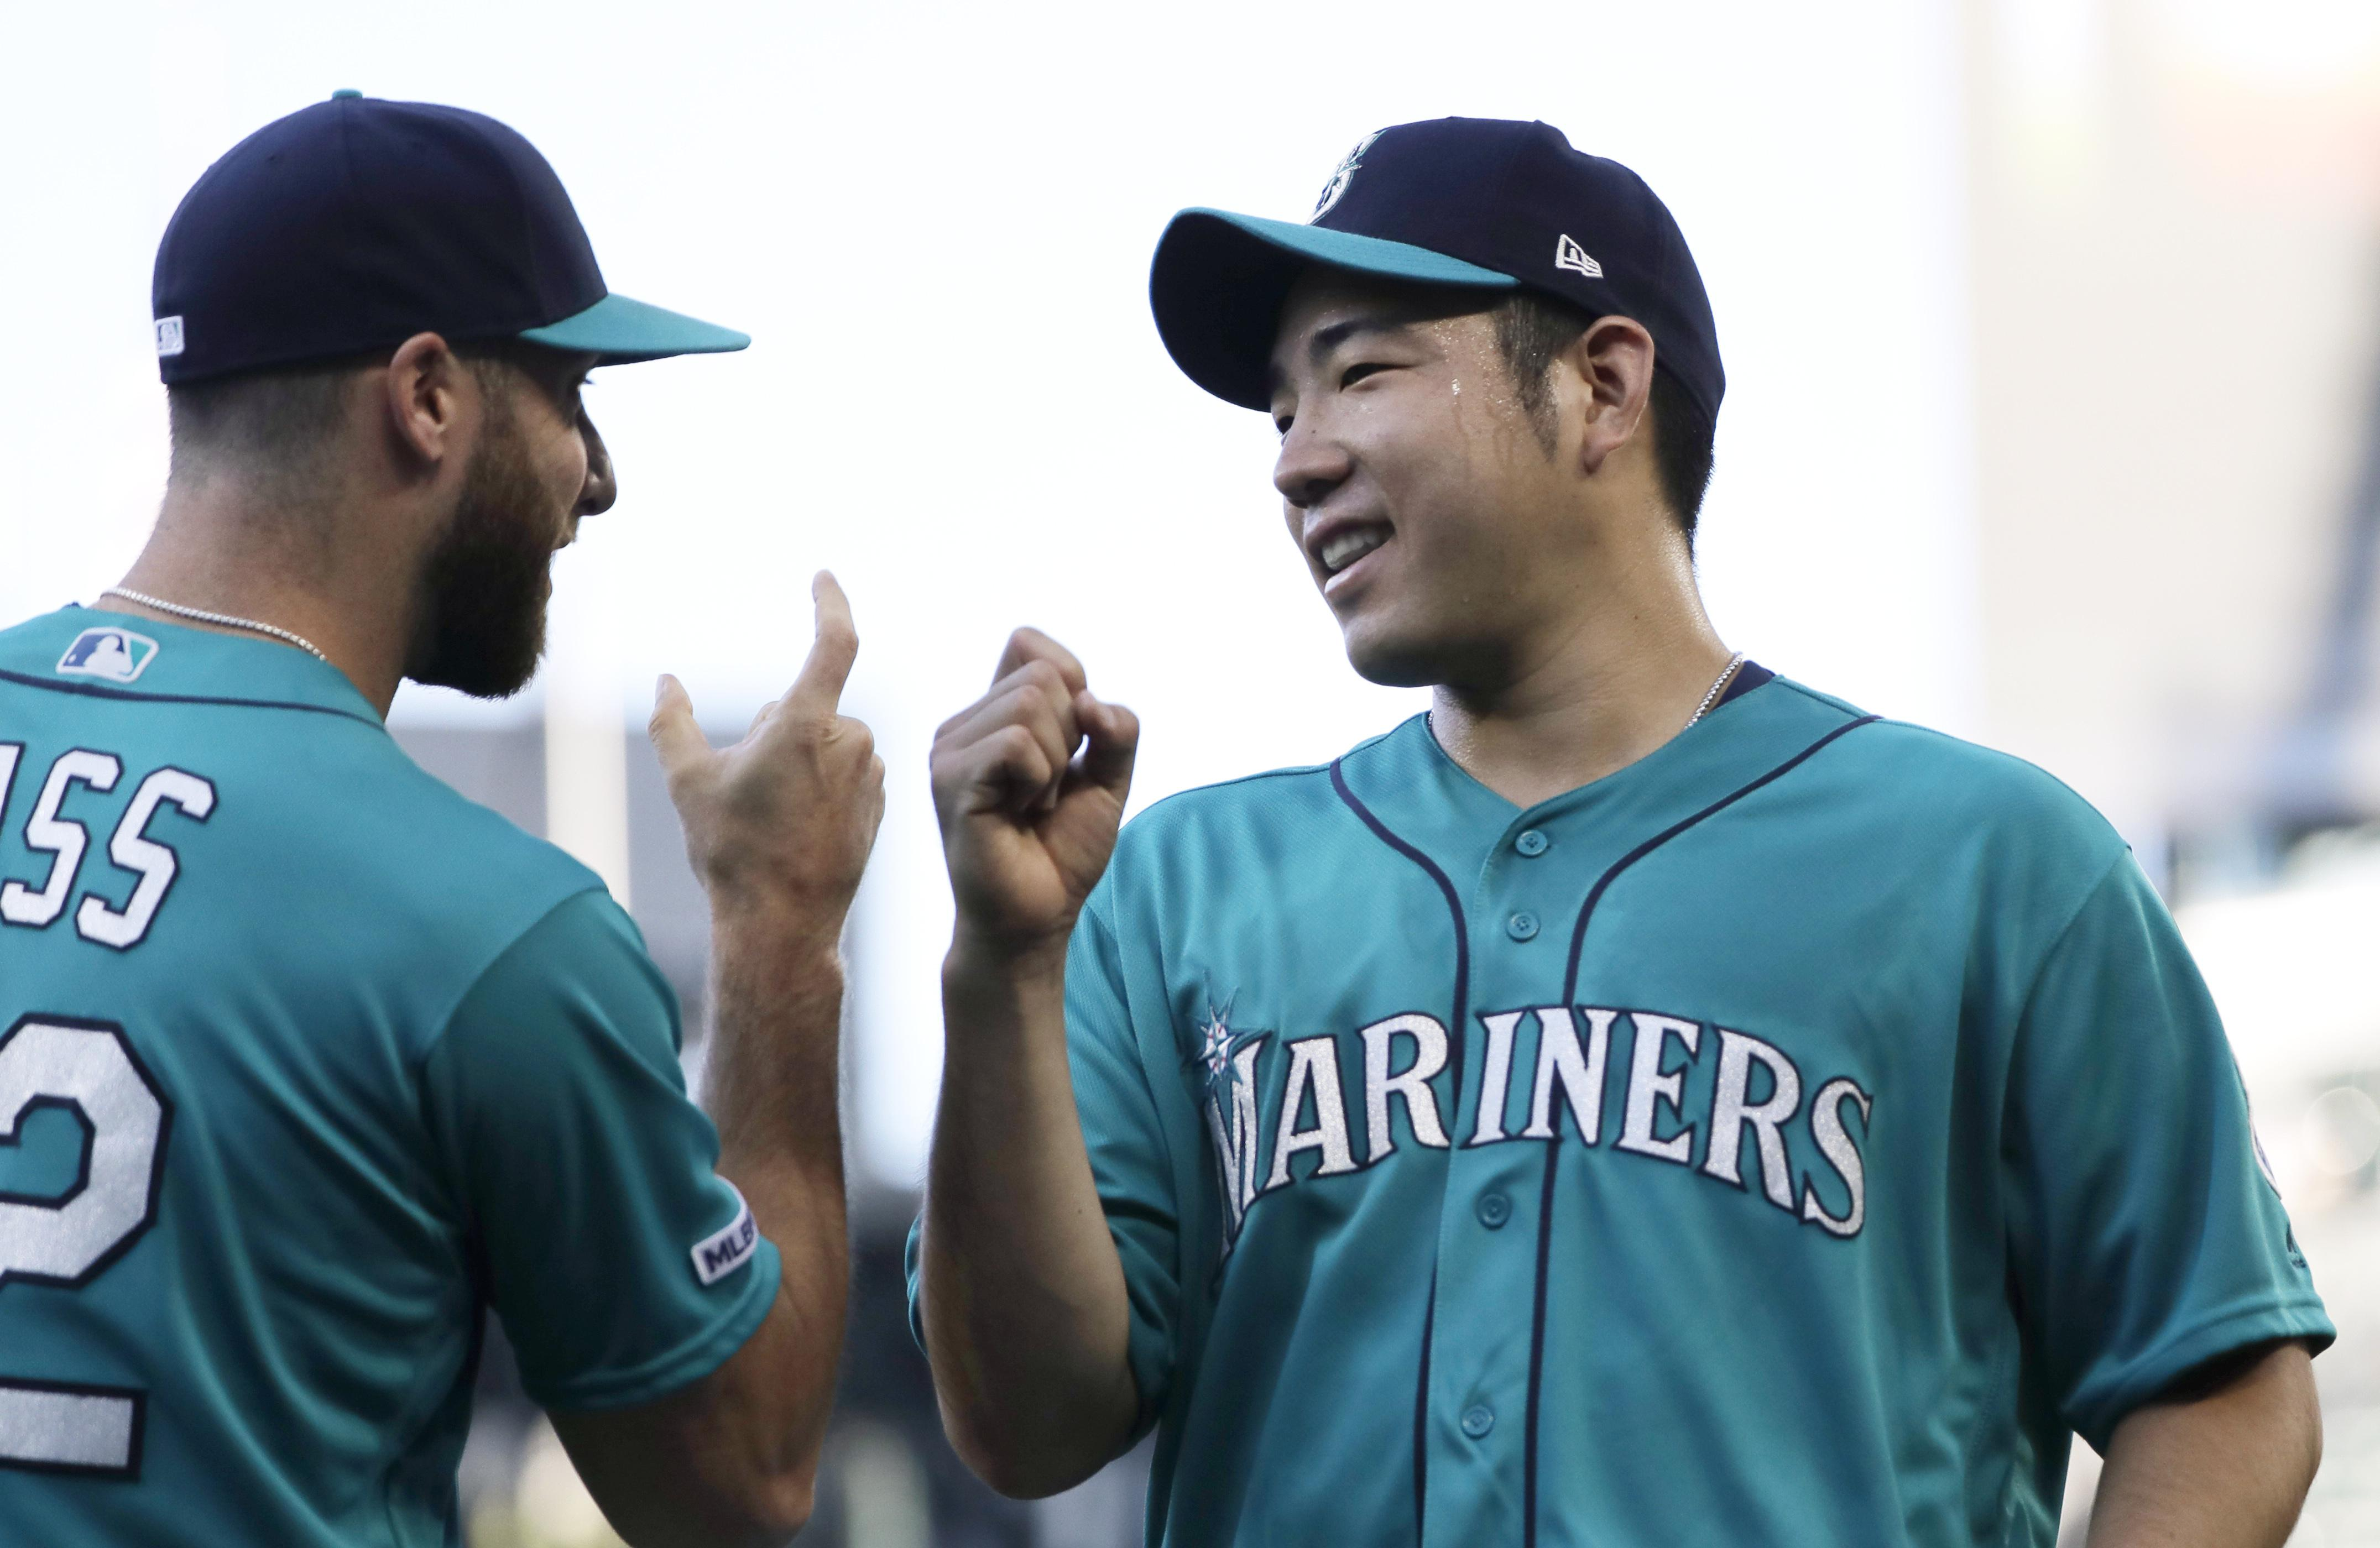 Rookies Court, Nola each drive in 3, Mariners top Tigers Saturday